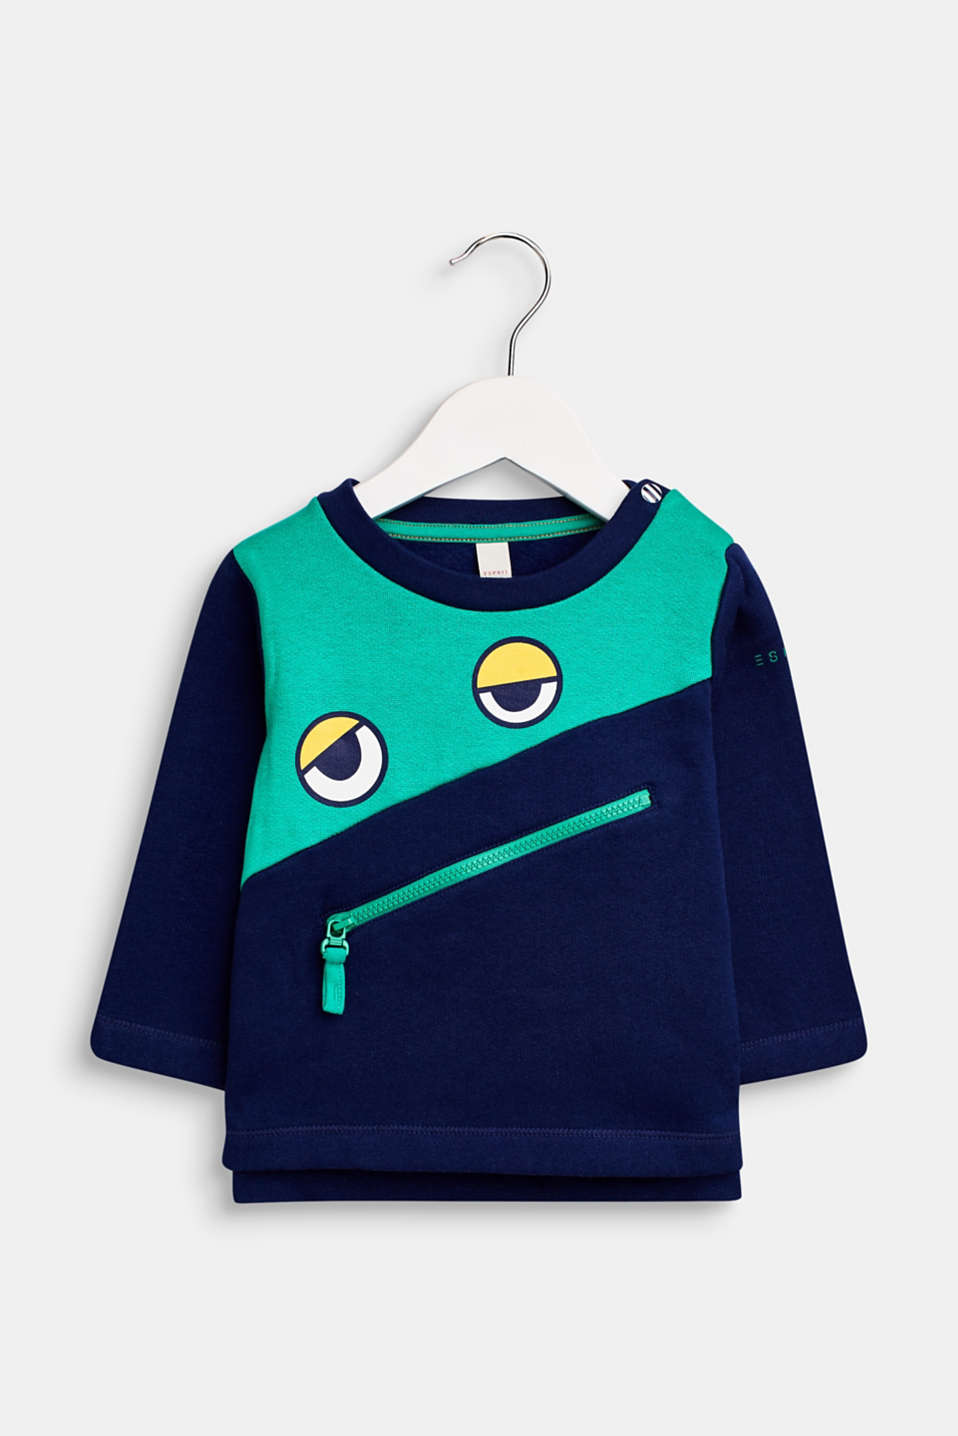 Esprit - Sweatshirt with an eye print